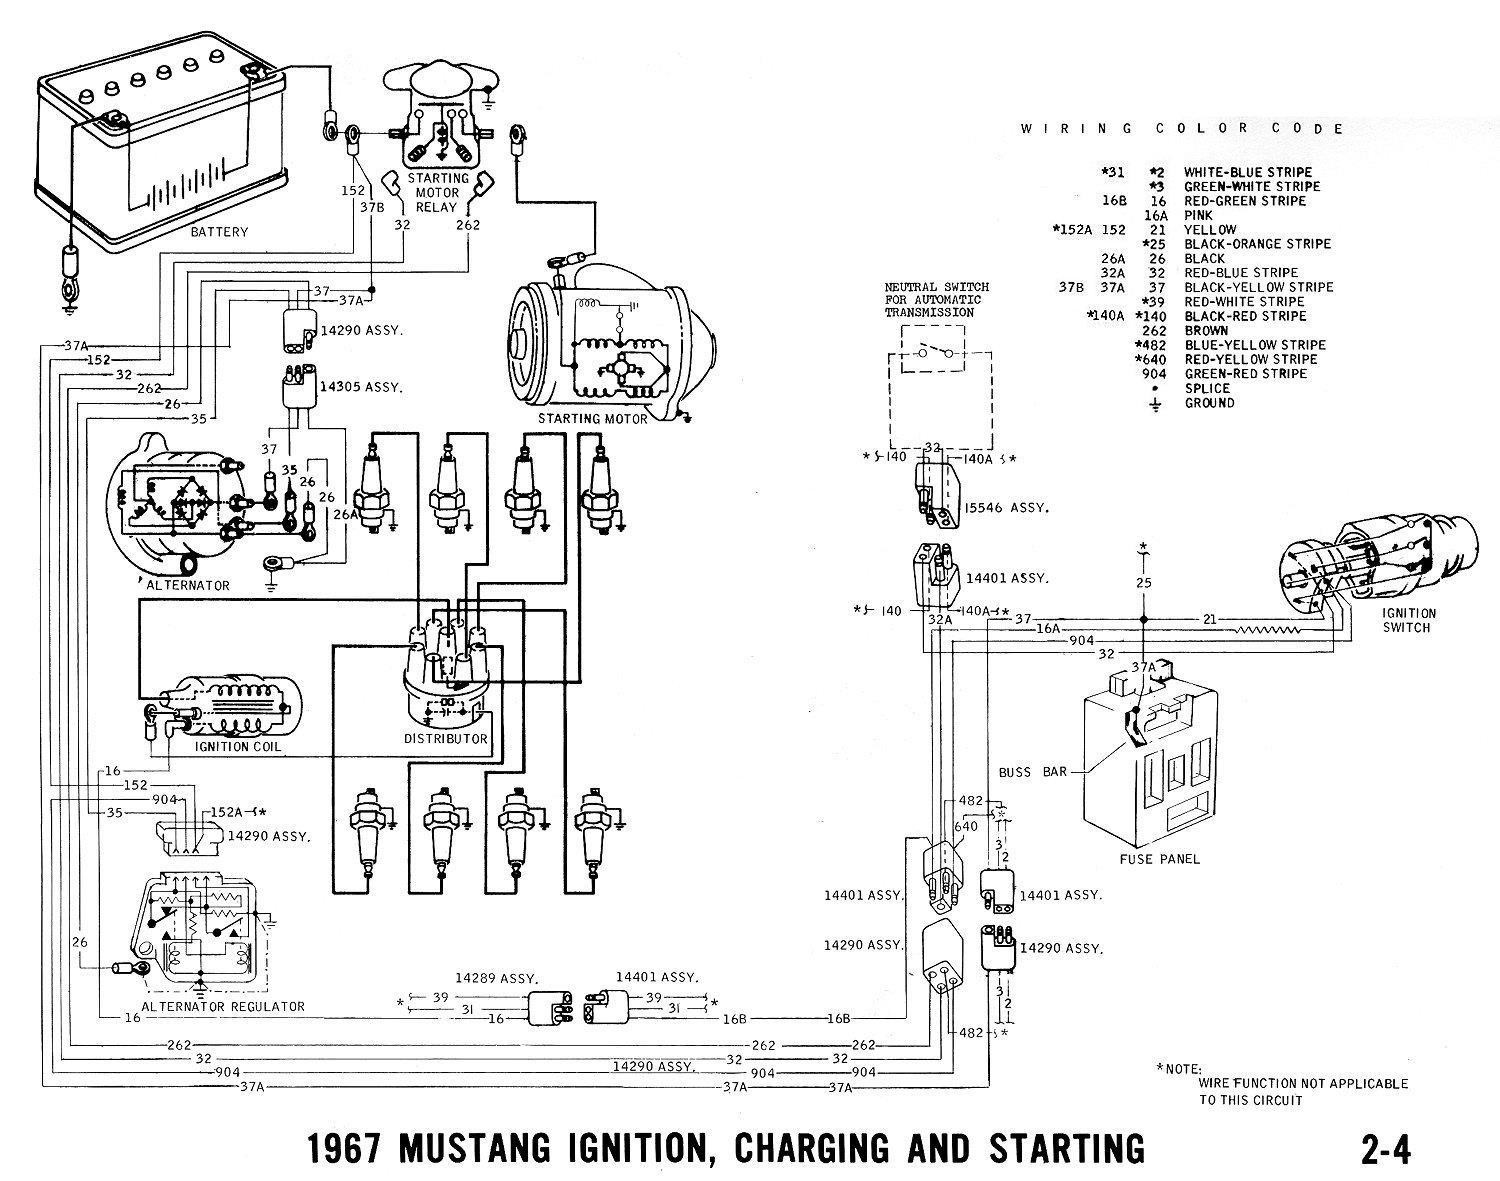 hight resolution of ford mustang ignition switch wiring diagram wiring diagram val 1985 mustang ignition switch wiring diagram